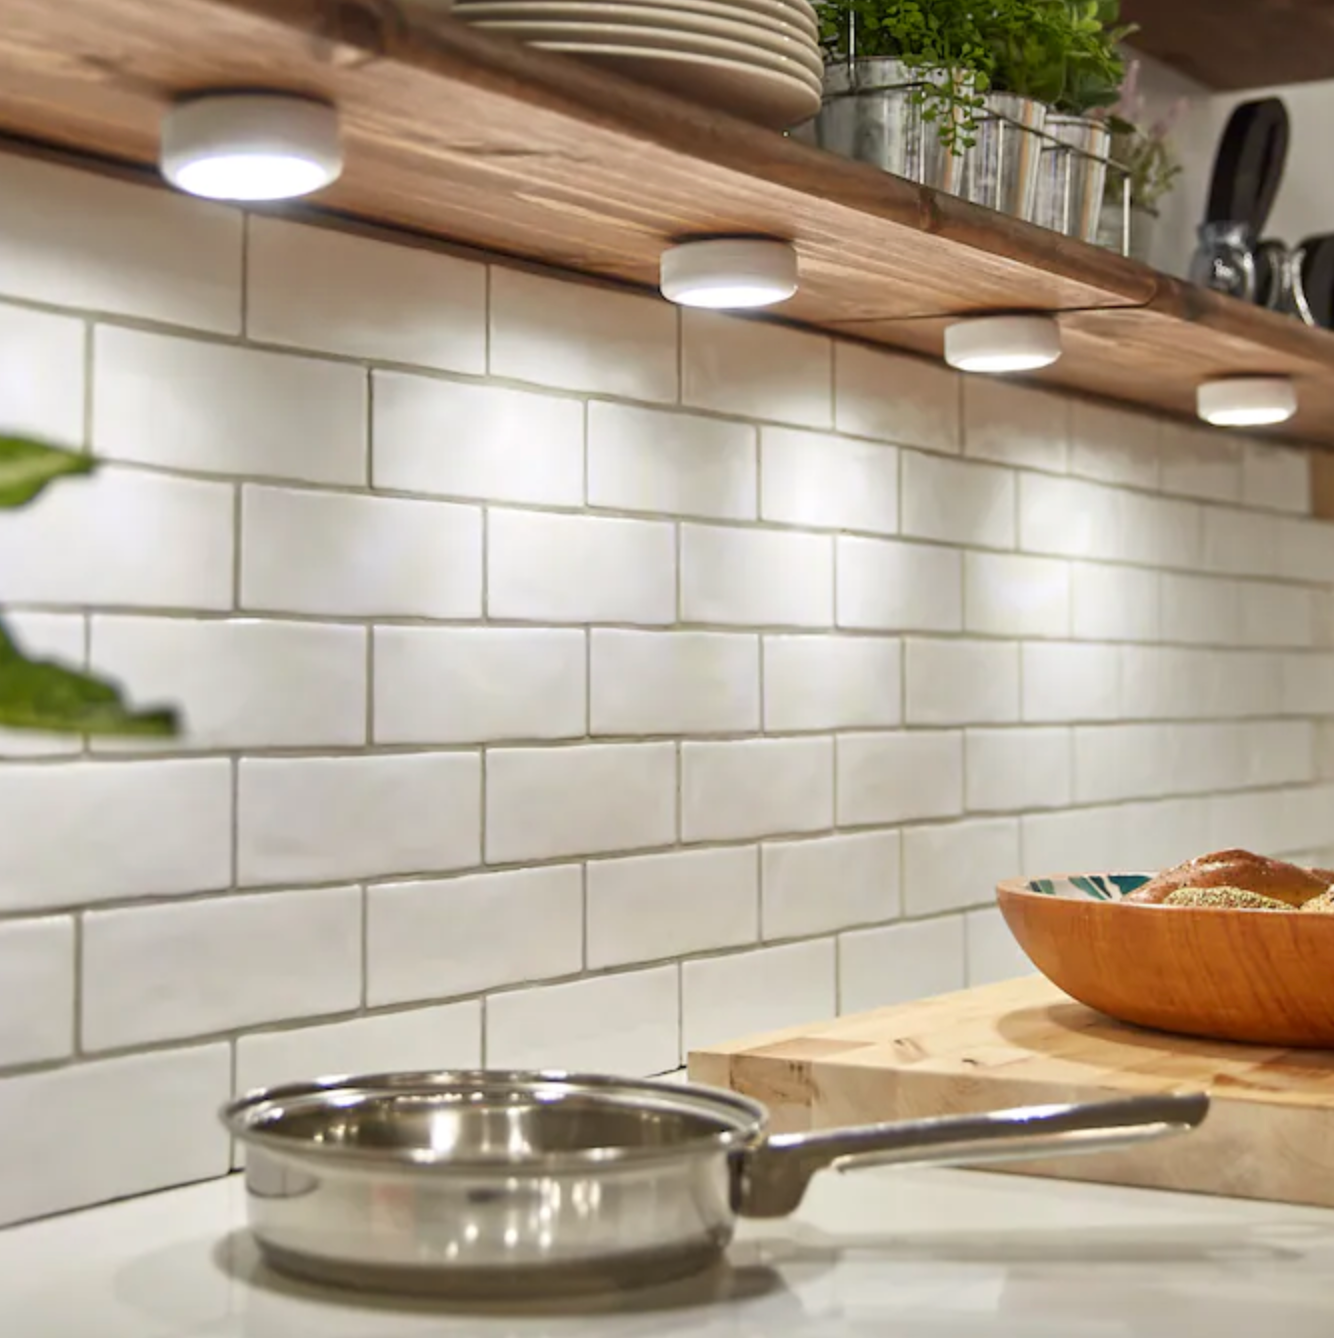 cabinet lights turned on in a kitchen